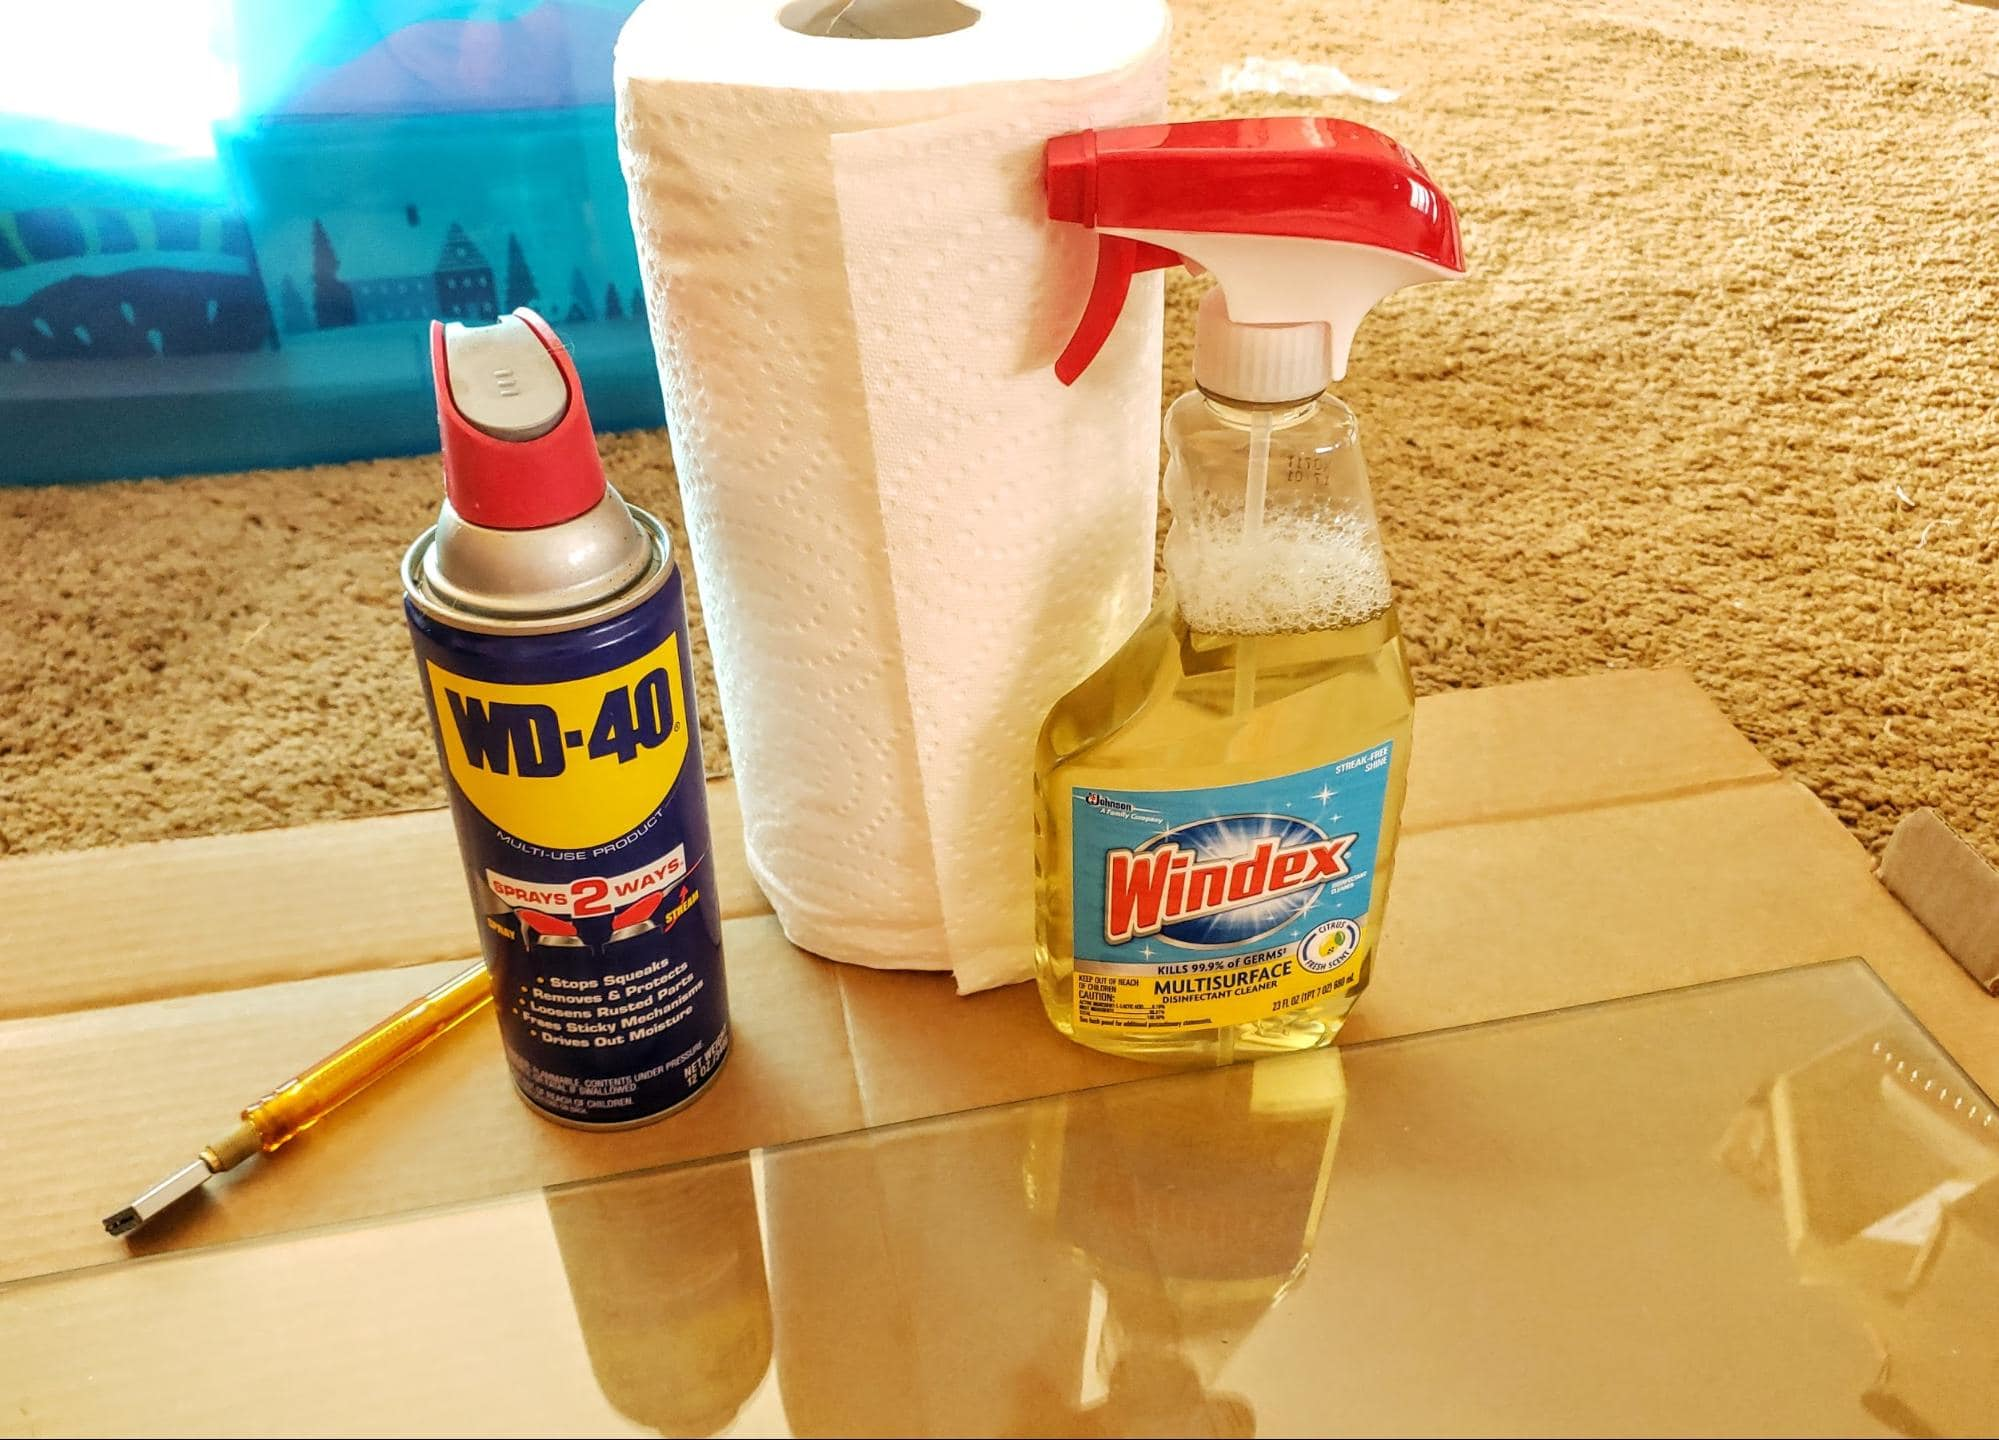 Glass + Oil lubricant + Glass Cutter + Glass Cleaner + Tissue Paper